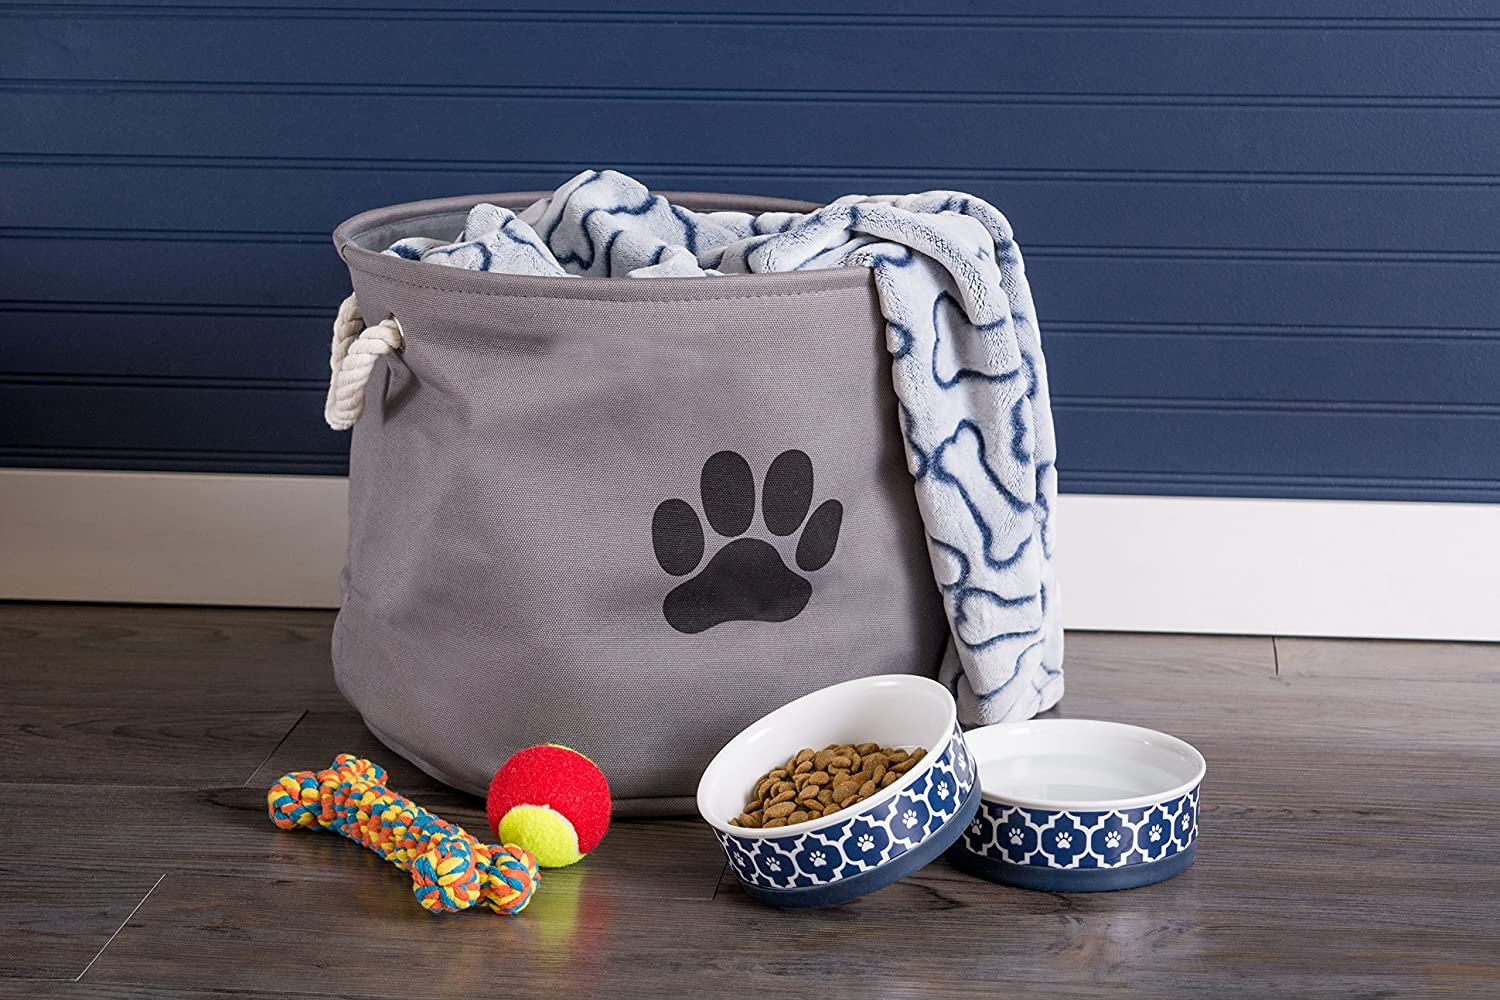 Blankets Leashes and Food-Taupe Pet Toy H Dia 14.5 DII Bone Dry Pet Toy and Accessory Storage Bin Collapsible Organizer Storage Basket for Home D/écor x12